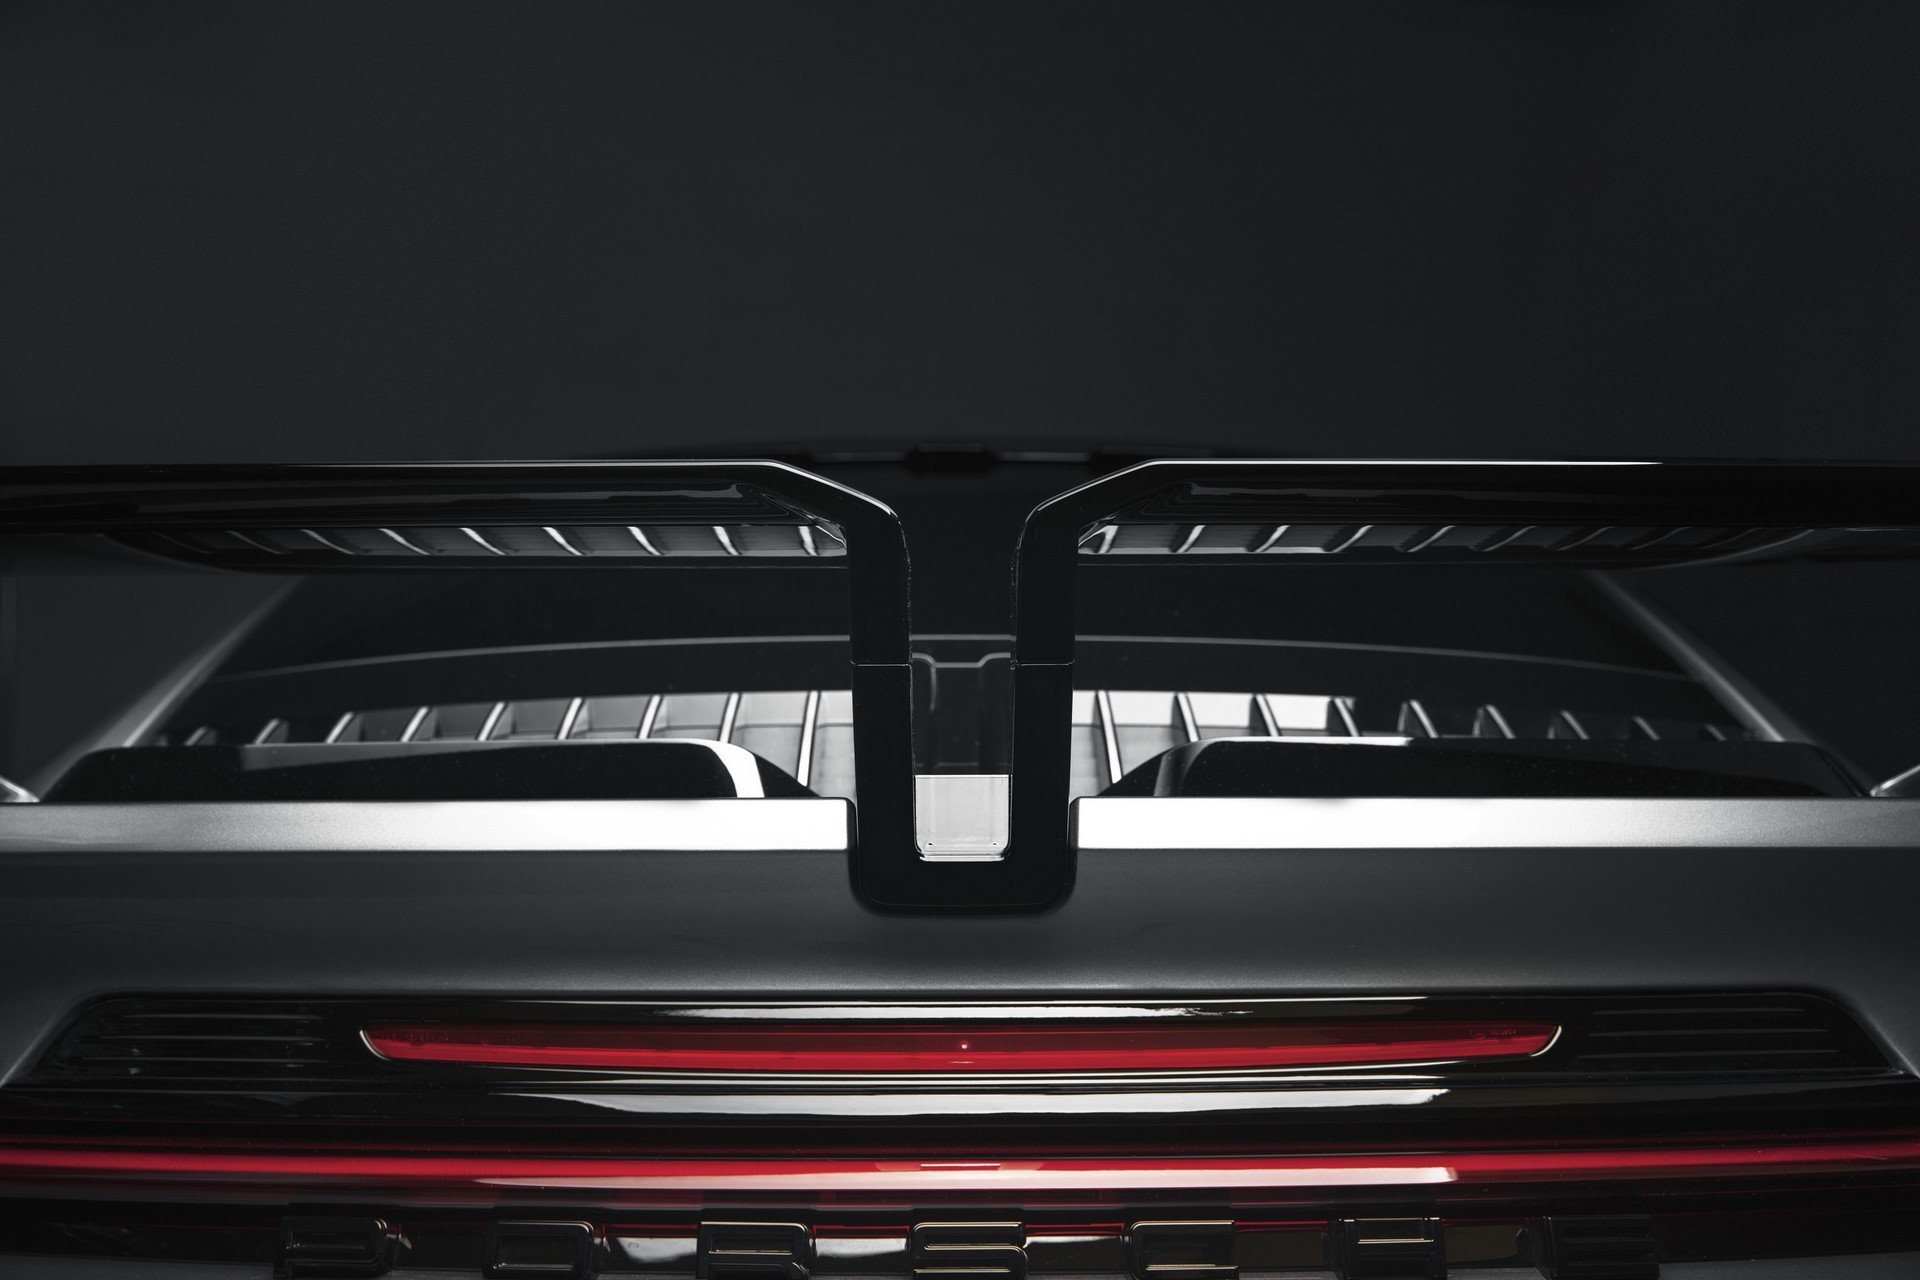 Porsche-911-Carrera-4S-by-TechArt-26